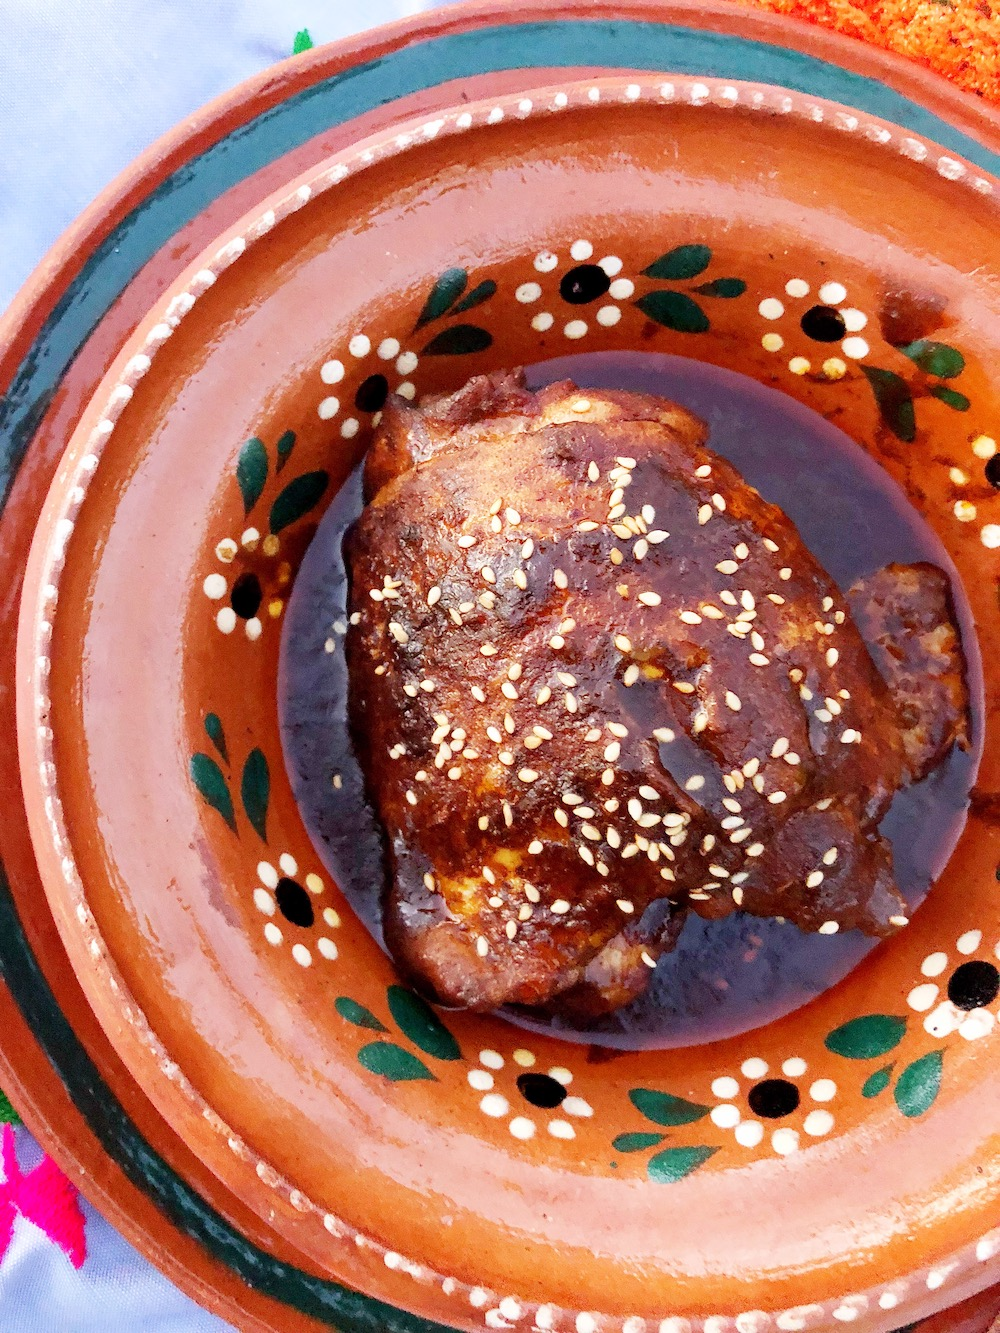 Classic red mole recipe. Make this traditional mole with chicken in under an hour! | LivingMiVidaLoca.com | #LivingMiVidaLoca #Mole #MoleinChicken #ChickeninMole #ChickenMole #TraditionalMexicanRecipes #MexicanFood #MexicanMole